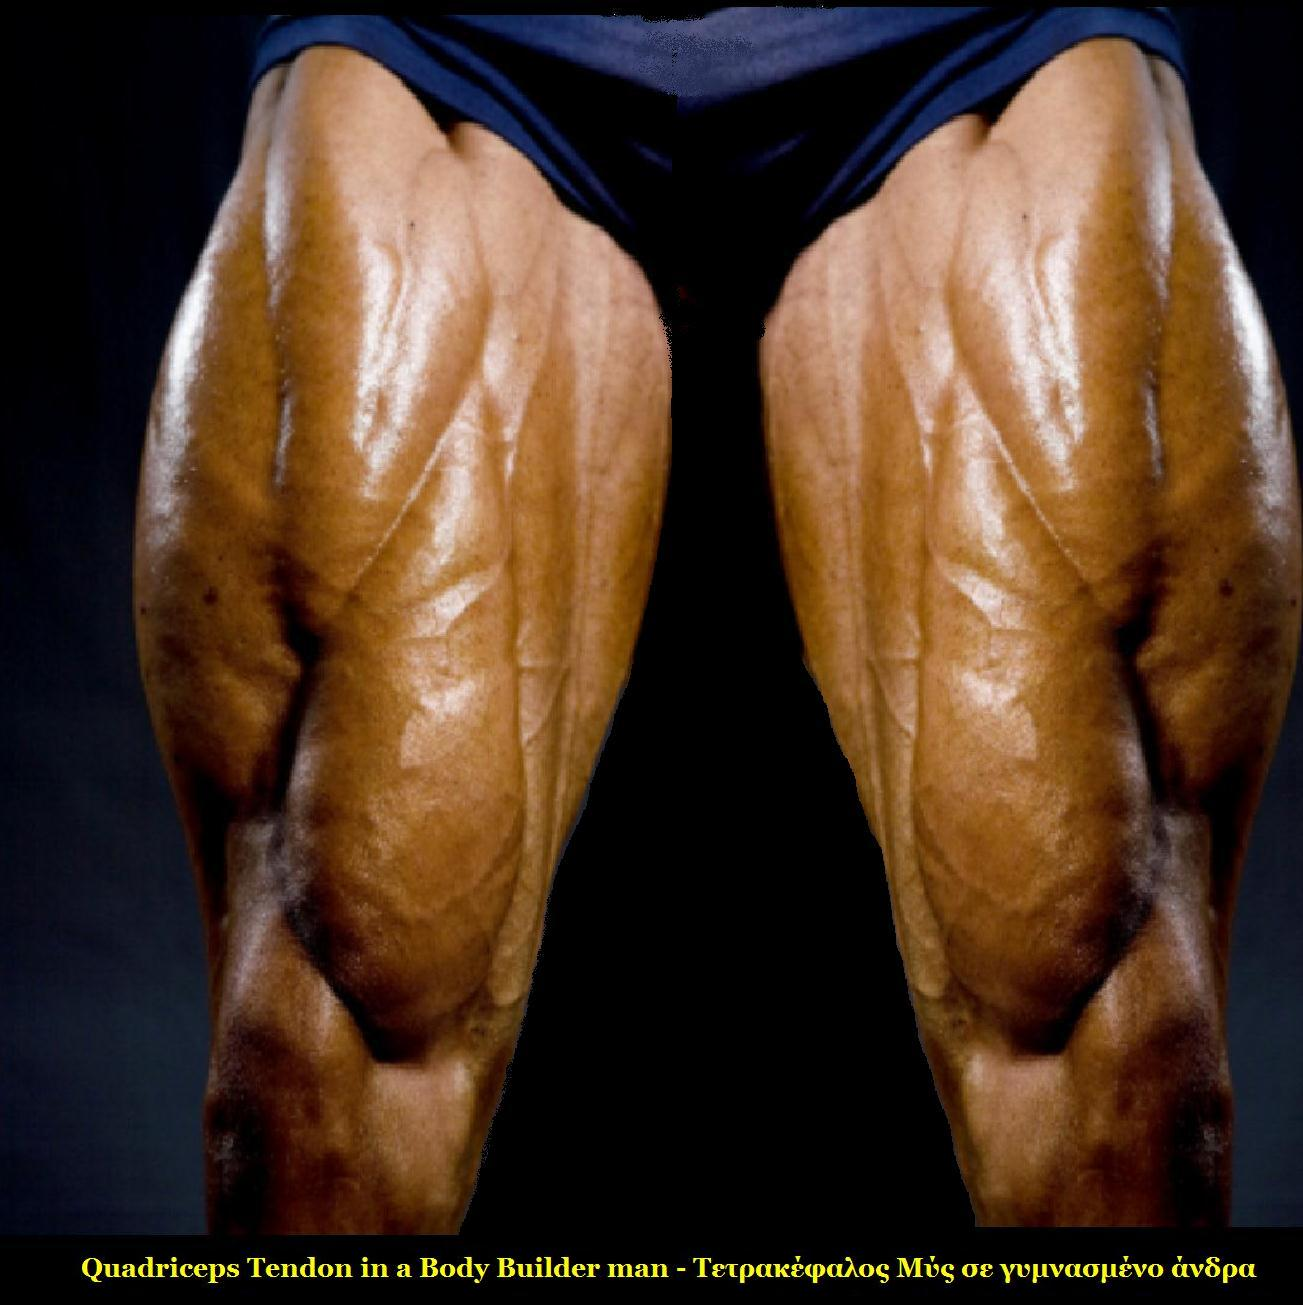 File:Body Builder Quadriceps.jpg - Wikimedia Commons